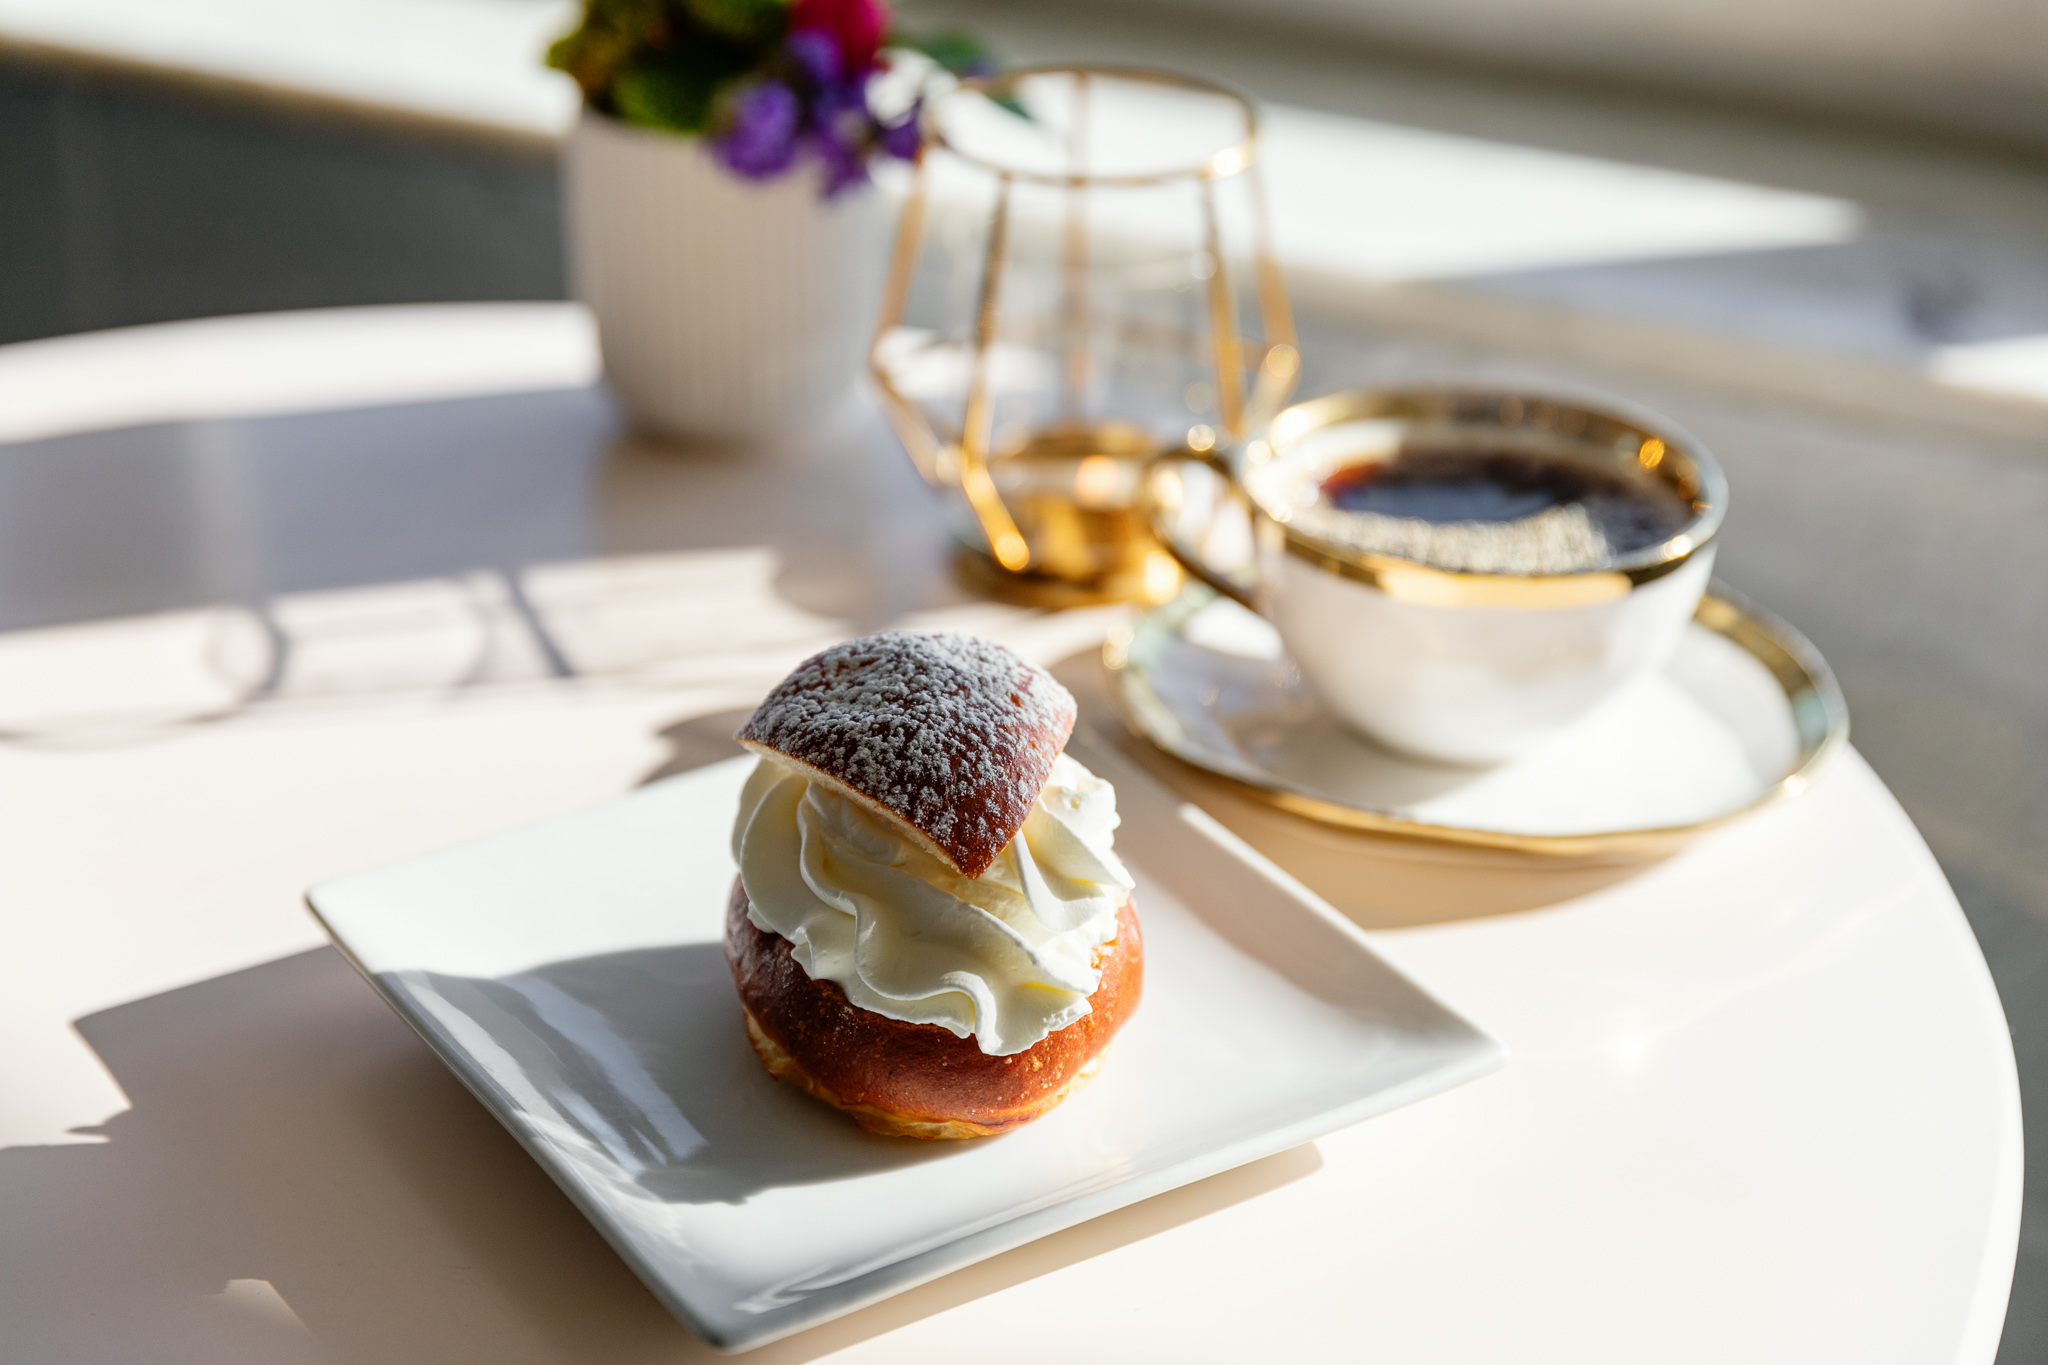 A bun on a white plate is filled with whipped cream and sits beside a cup of coffee in the sun.